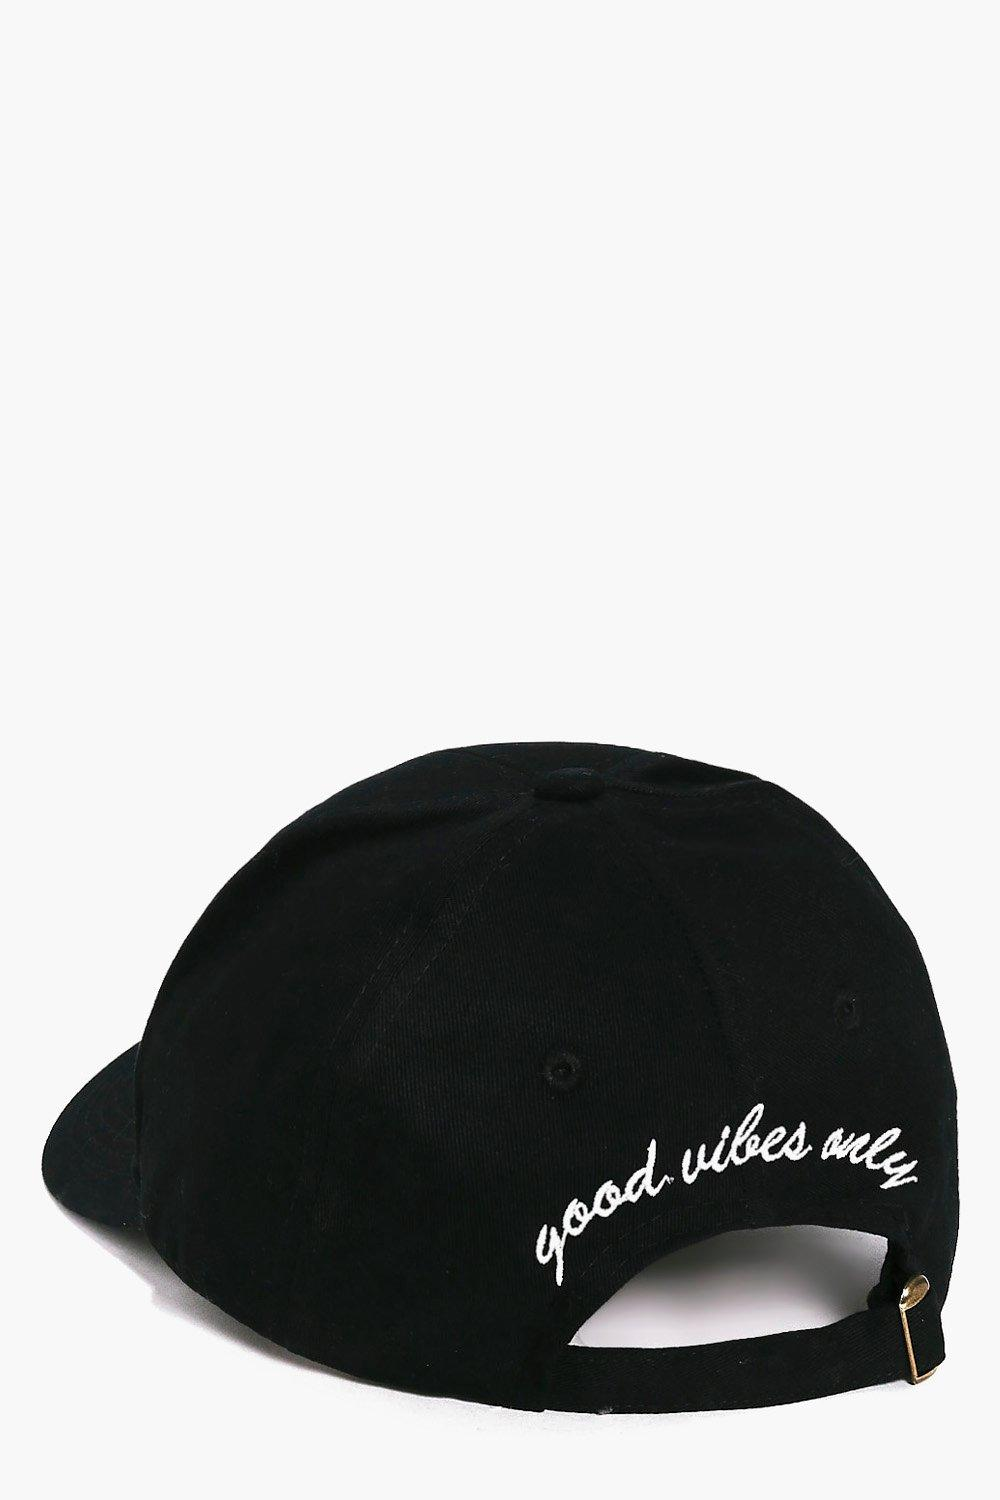 Good Vibes Only Slogan Baseball Cap - black - Fran